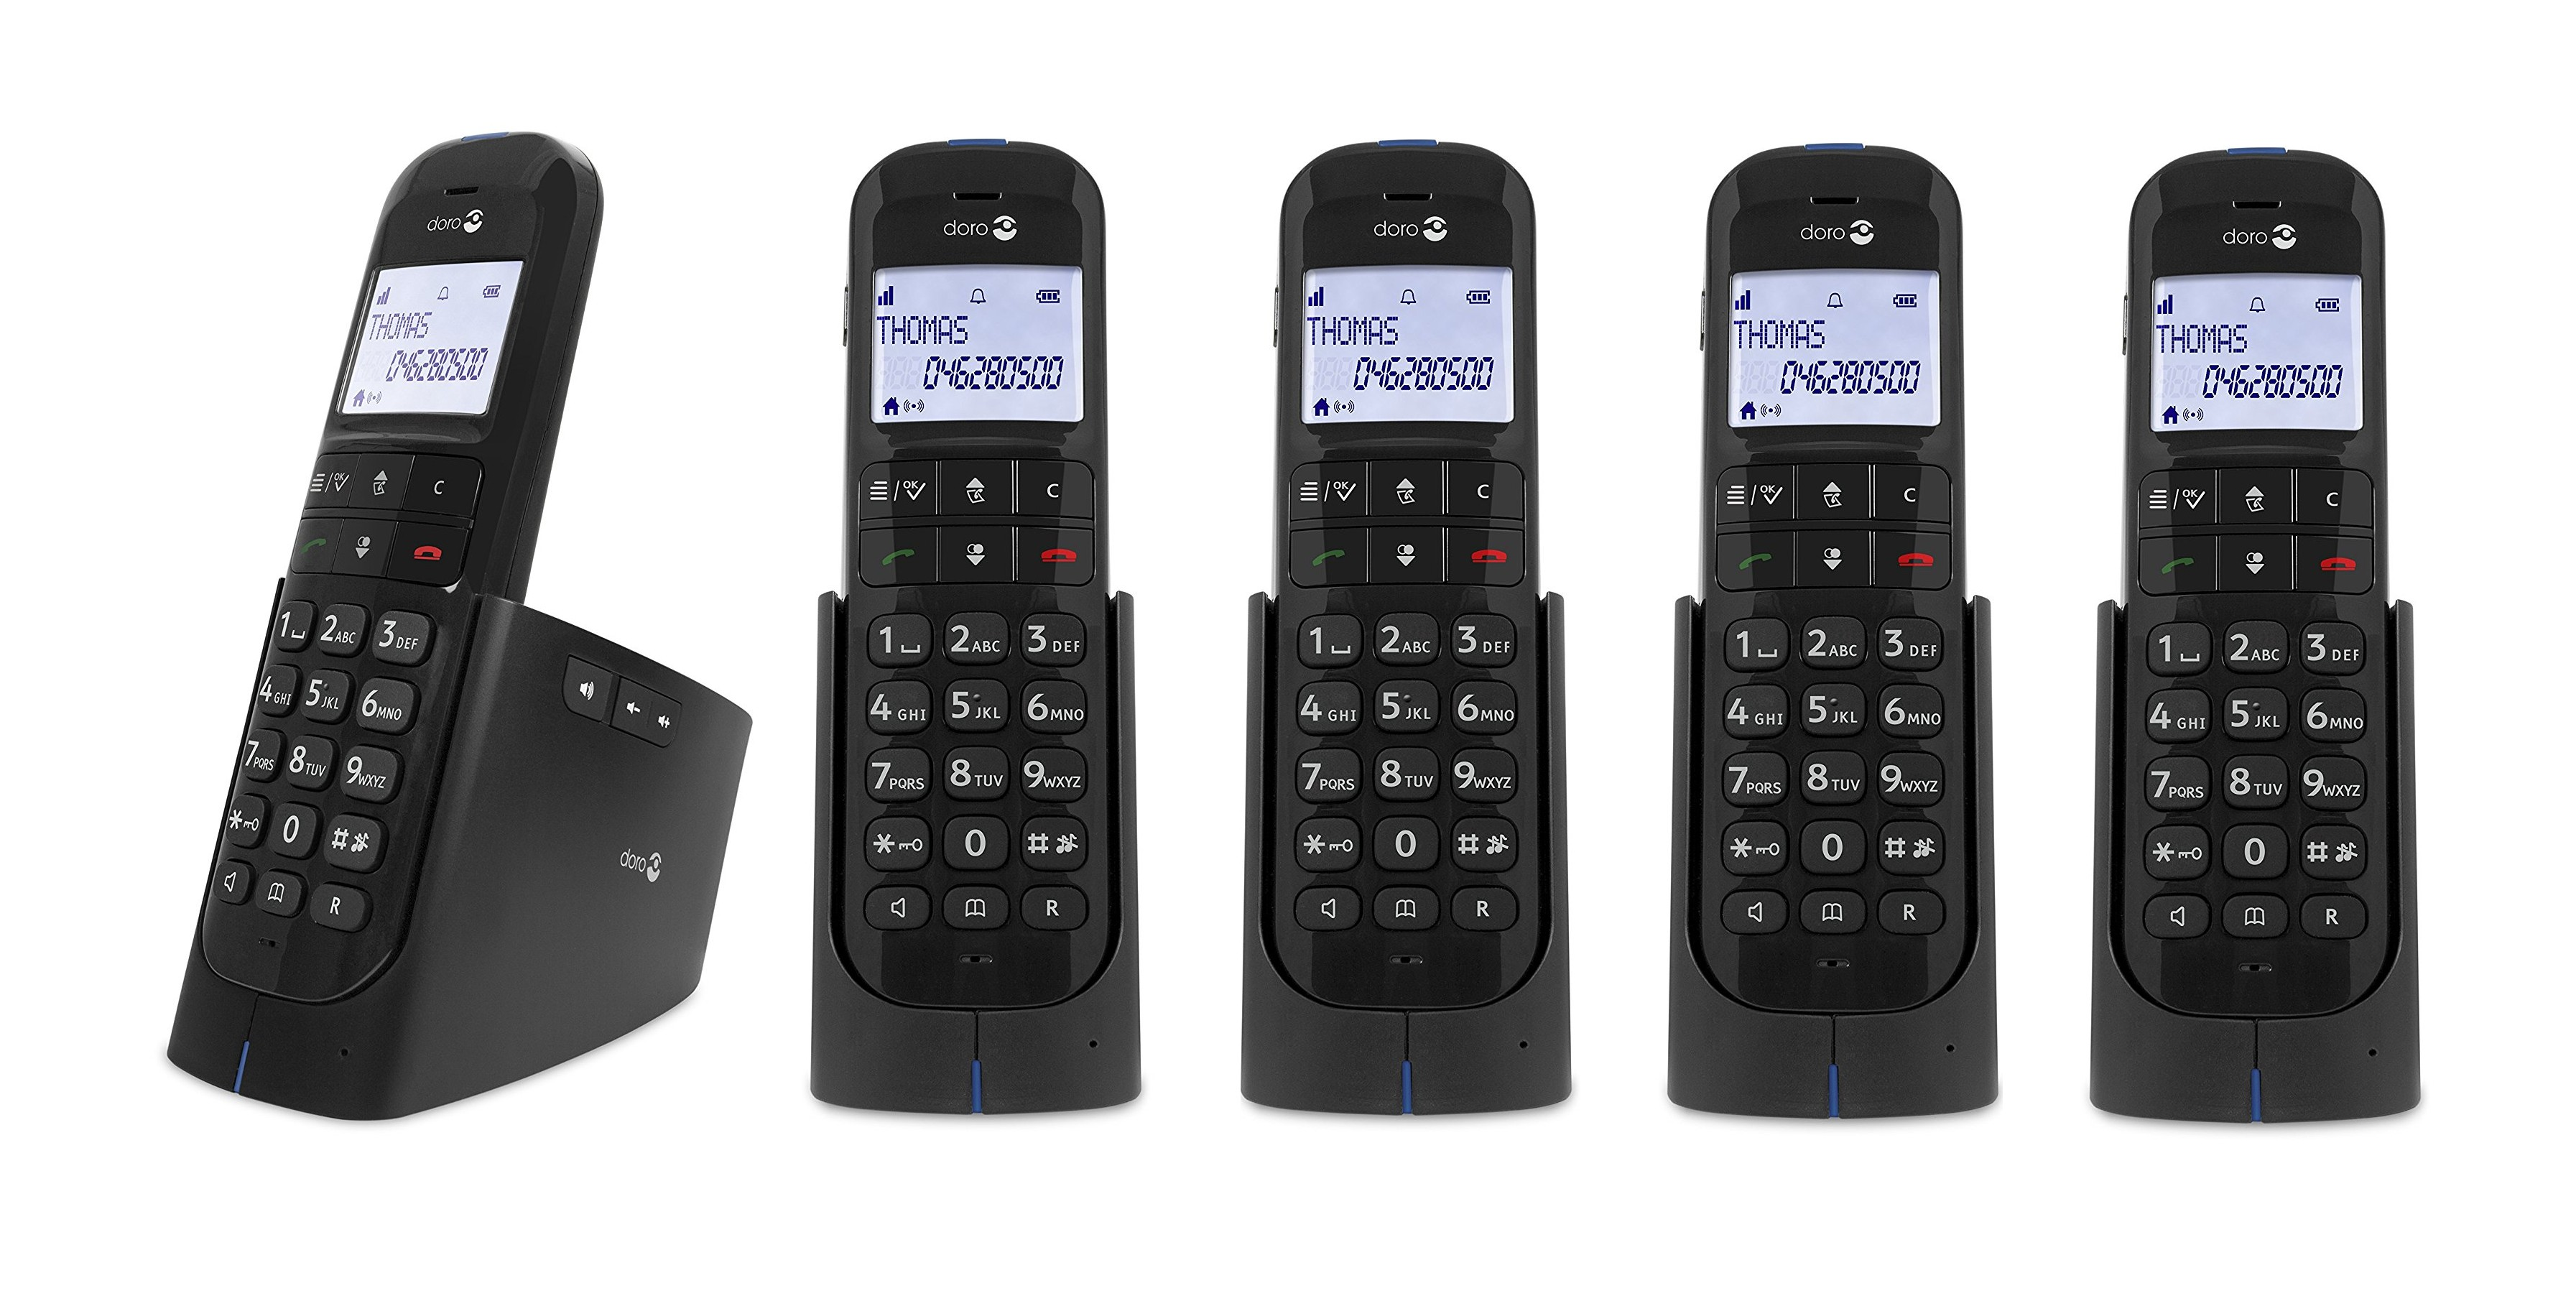 Doro Magna 2005 DECT Cordless Phone With Answering Machine - Quint